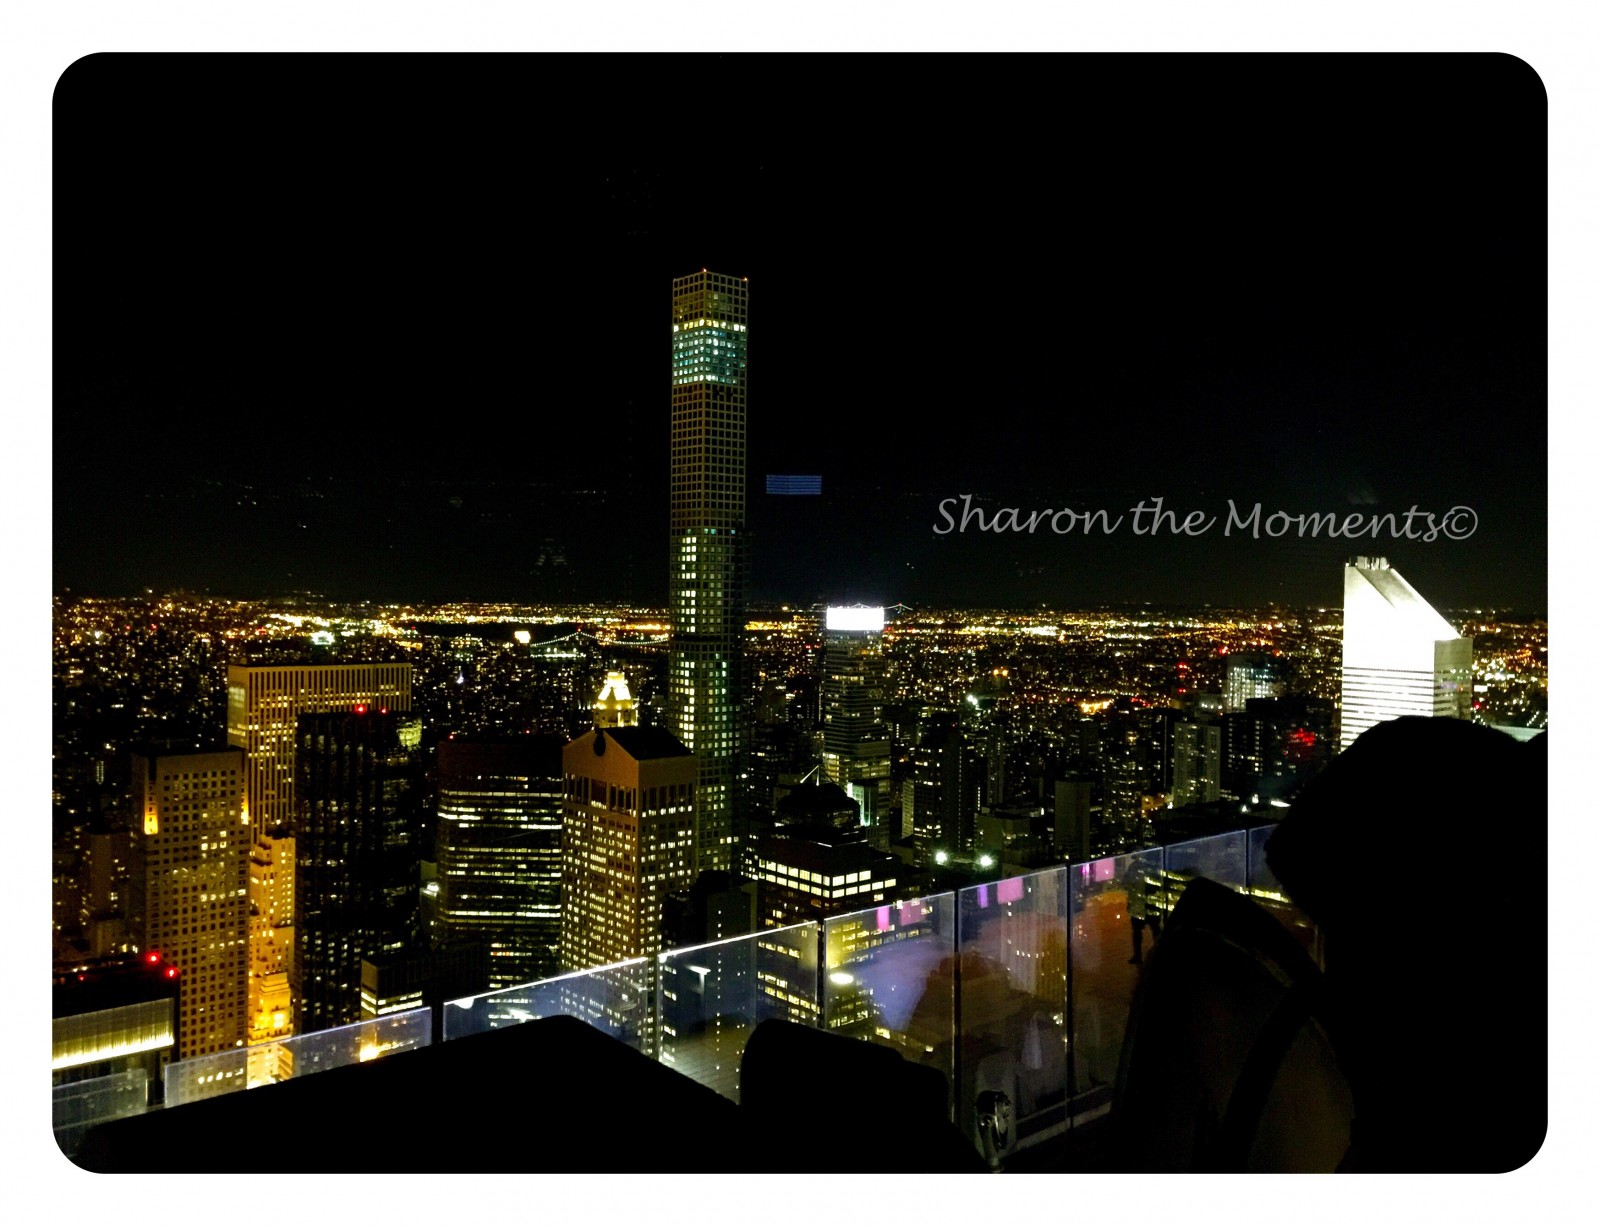 Top of the Rock and Rockefeller Center in New York City|Sharon the Moments Blog